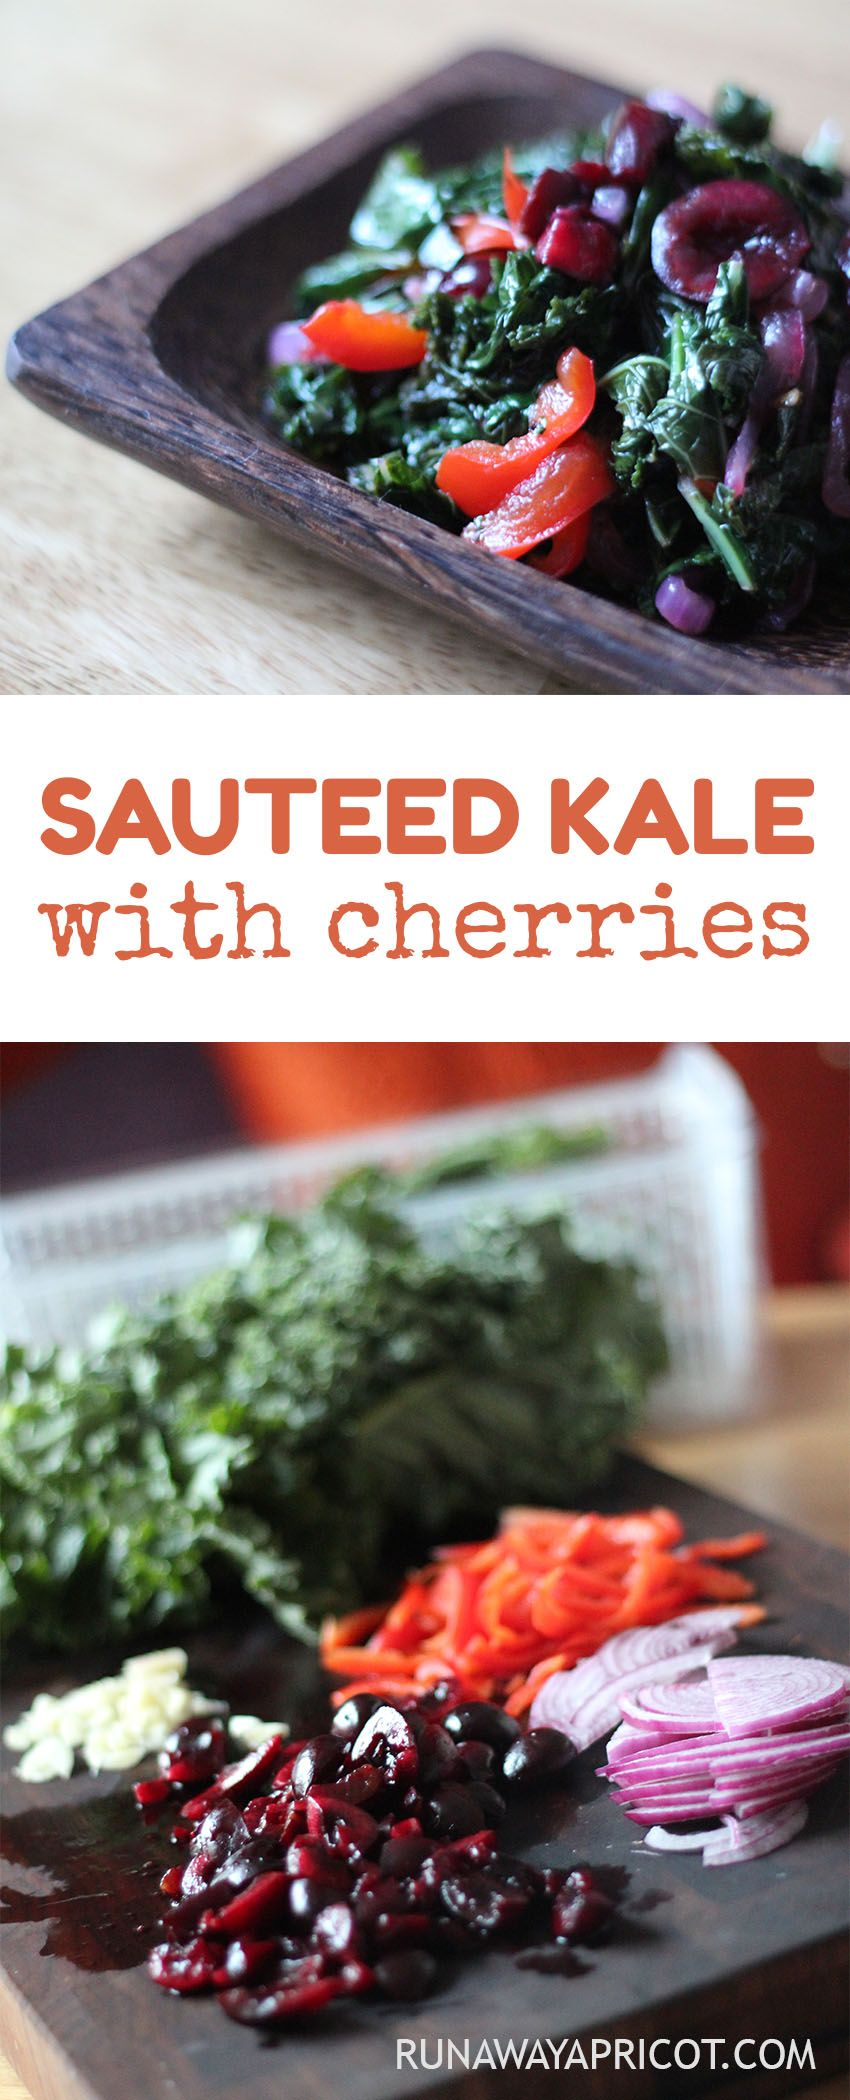 Sauteed Kale with Cherries. Make this quick side dish for a burst of color and nutrition at any meal. Reheat easily for #mealprep!